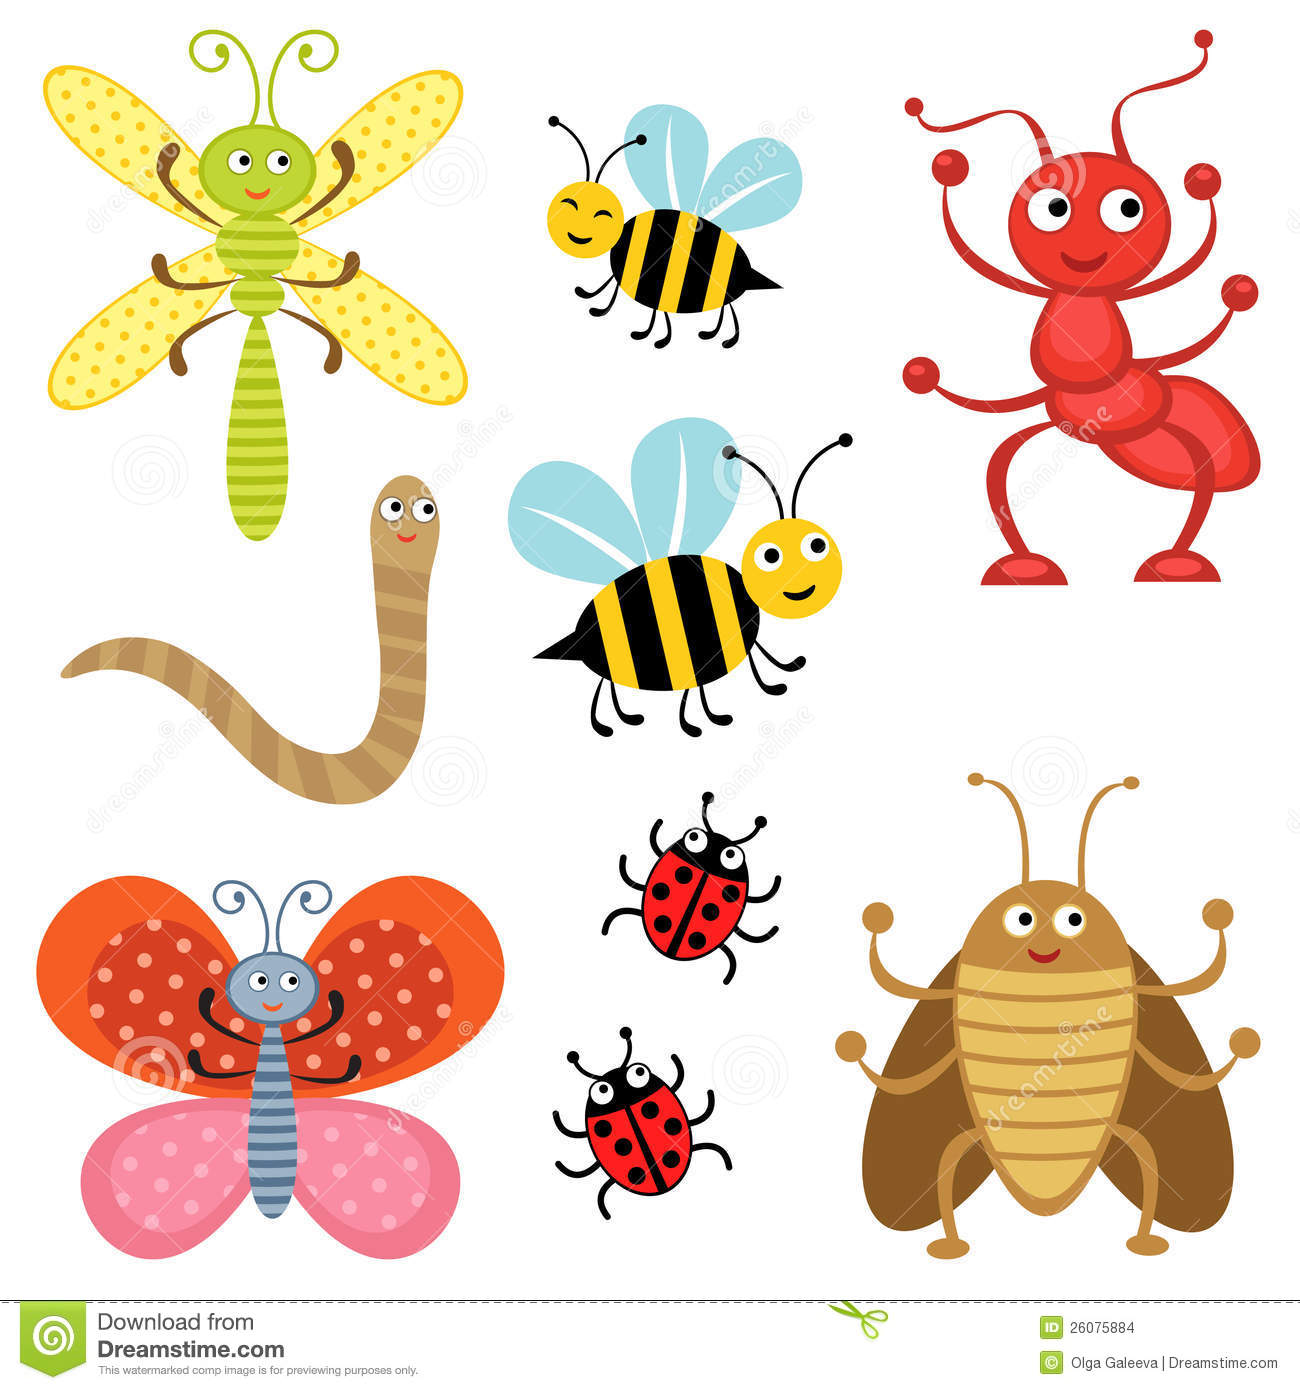 Cute insect drawing - photo#17